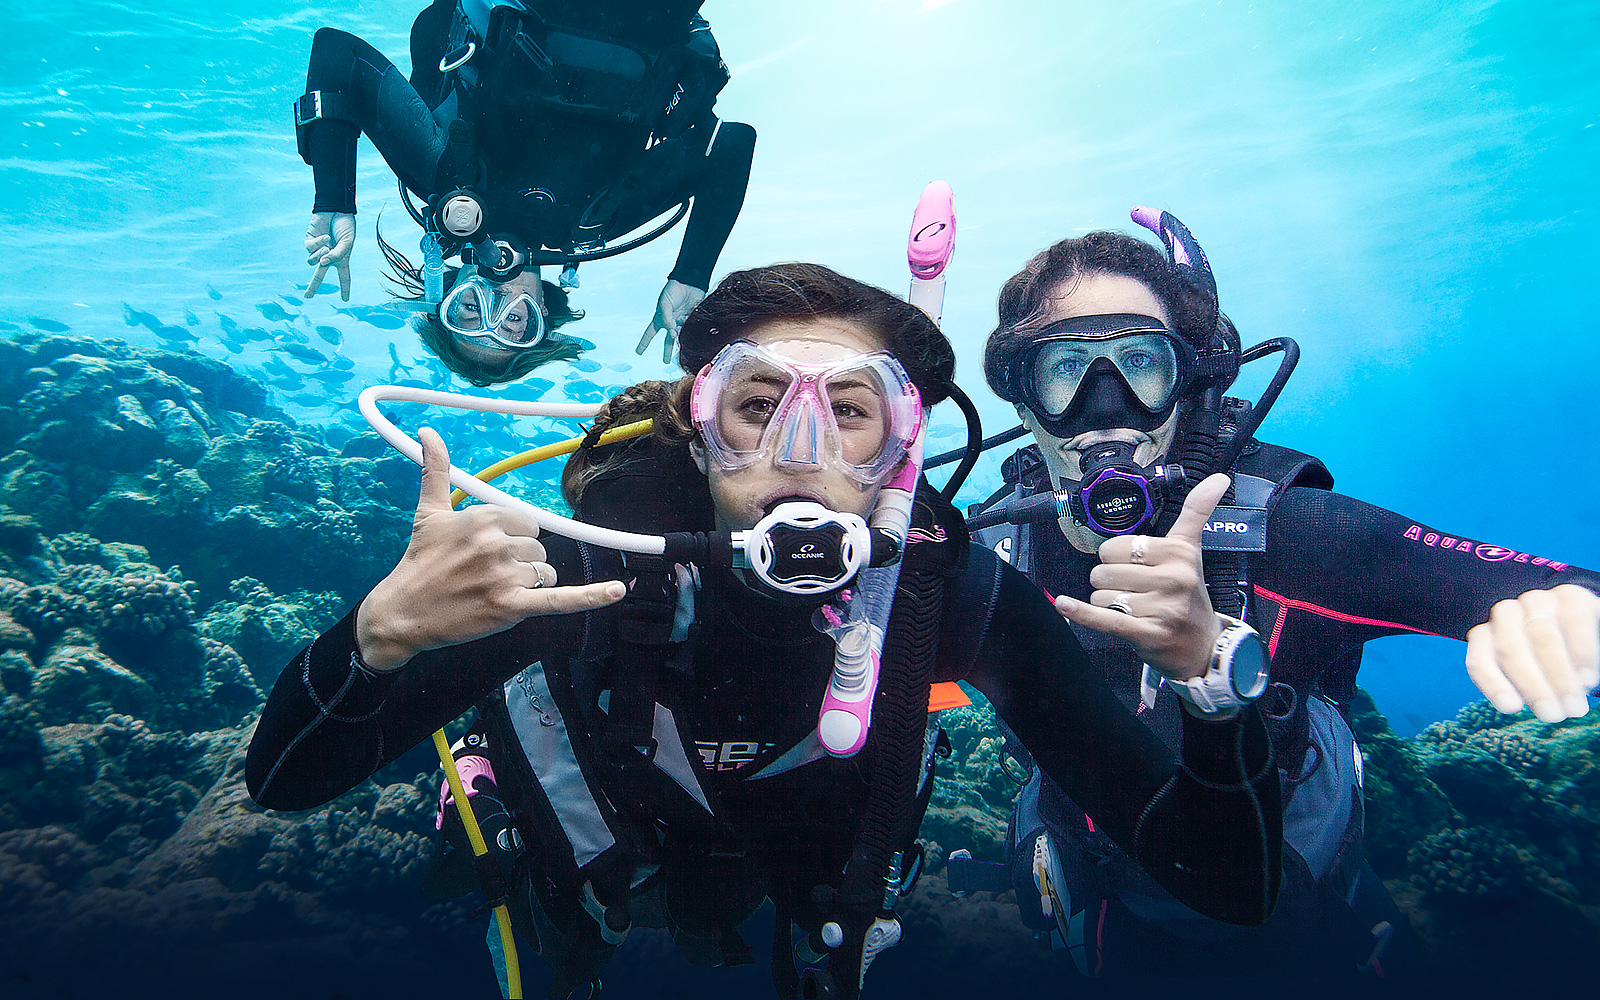 Learn to dive in sharm el sheikh at sharm plaza hotel